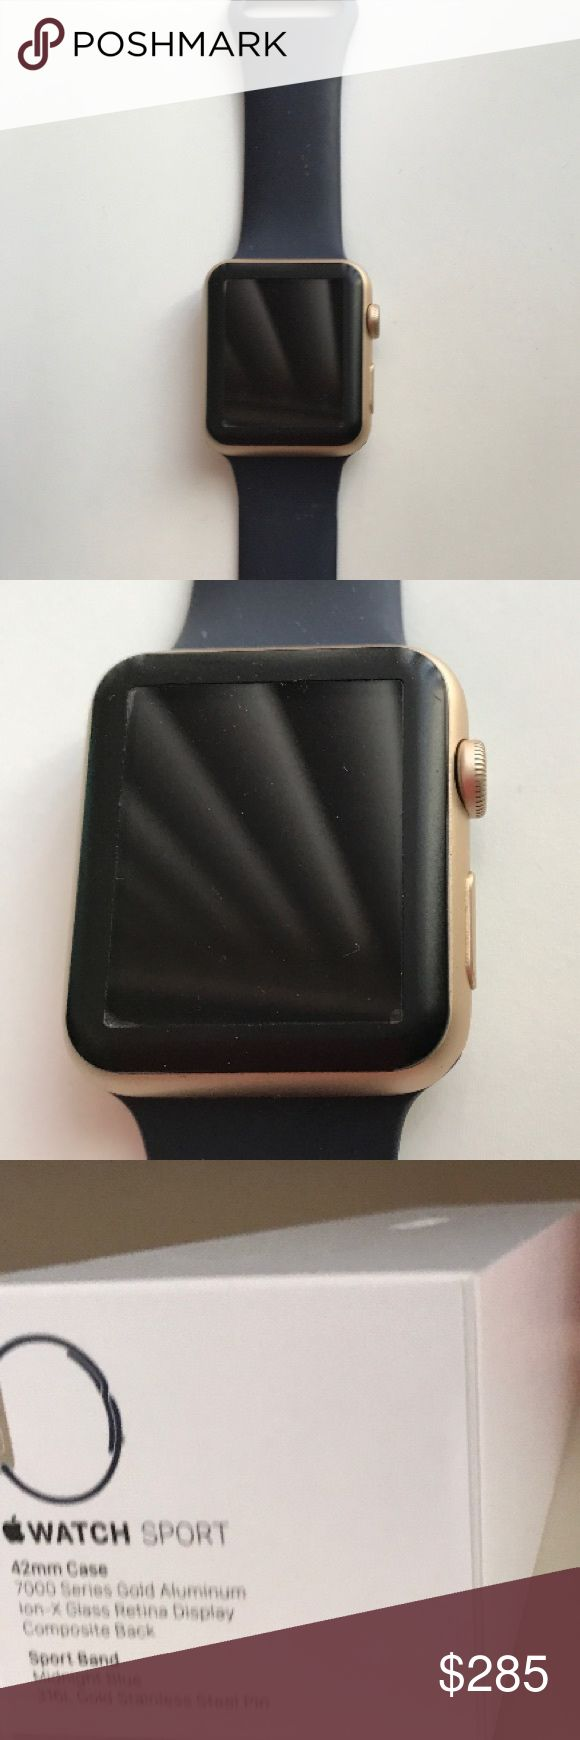 ❤️IPHONE WATCH|~LIKE NEW|~SERIES 2~W/EXTRAS❤️ ❤️LIKE BRAND NEW IPHONE SERIES 2 WATCH. COMES IN ORIGINAL PACKAGING. INCLUDES SCREEN PROTECTOR AND CHARGER. NAVY BLUE WATCH BAND. WORN MAYBE 5-10X. RETAIL $375. PRICE IS FIRM❤️ IPHONE Accessories Watches